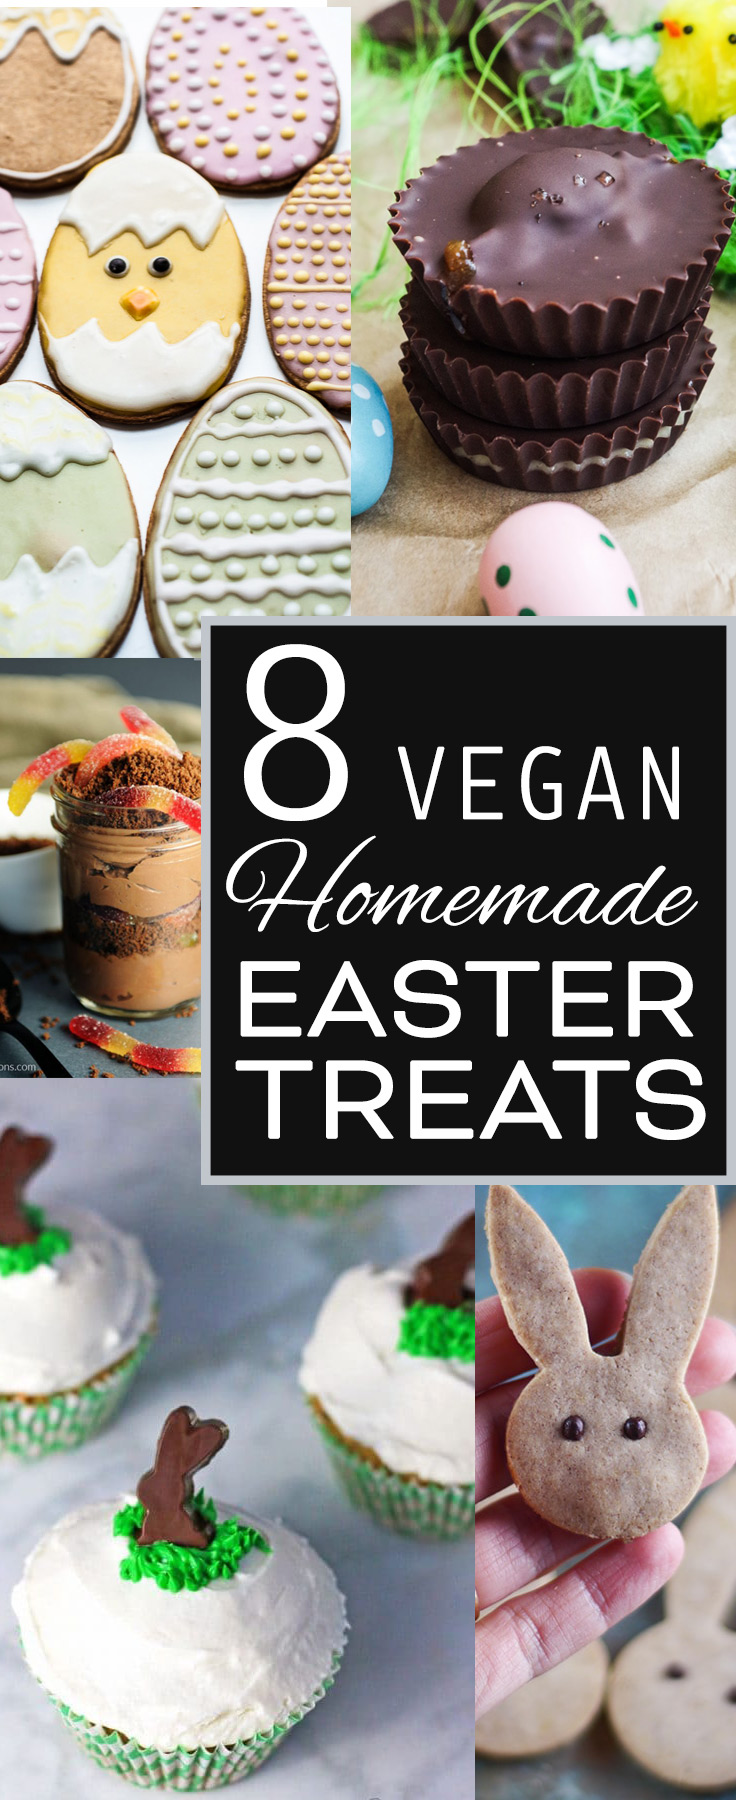 8 Homemade Vegan Treat Gifts For Easter Other Spring Gatherings